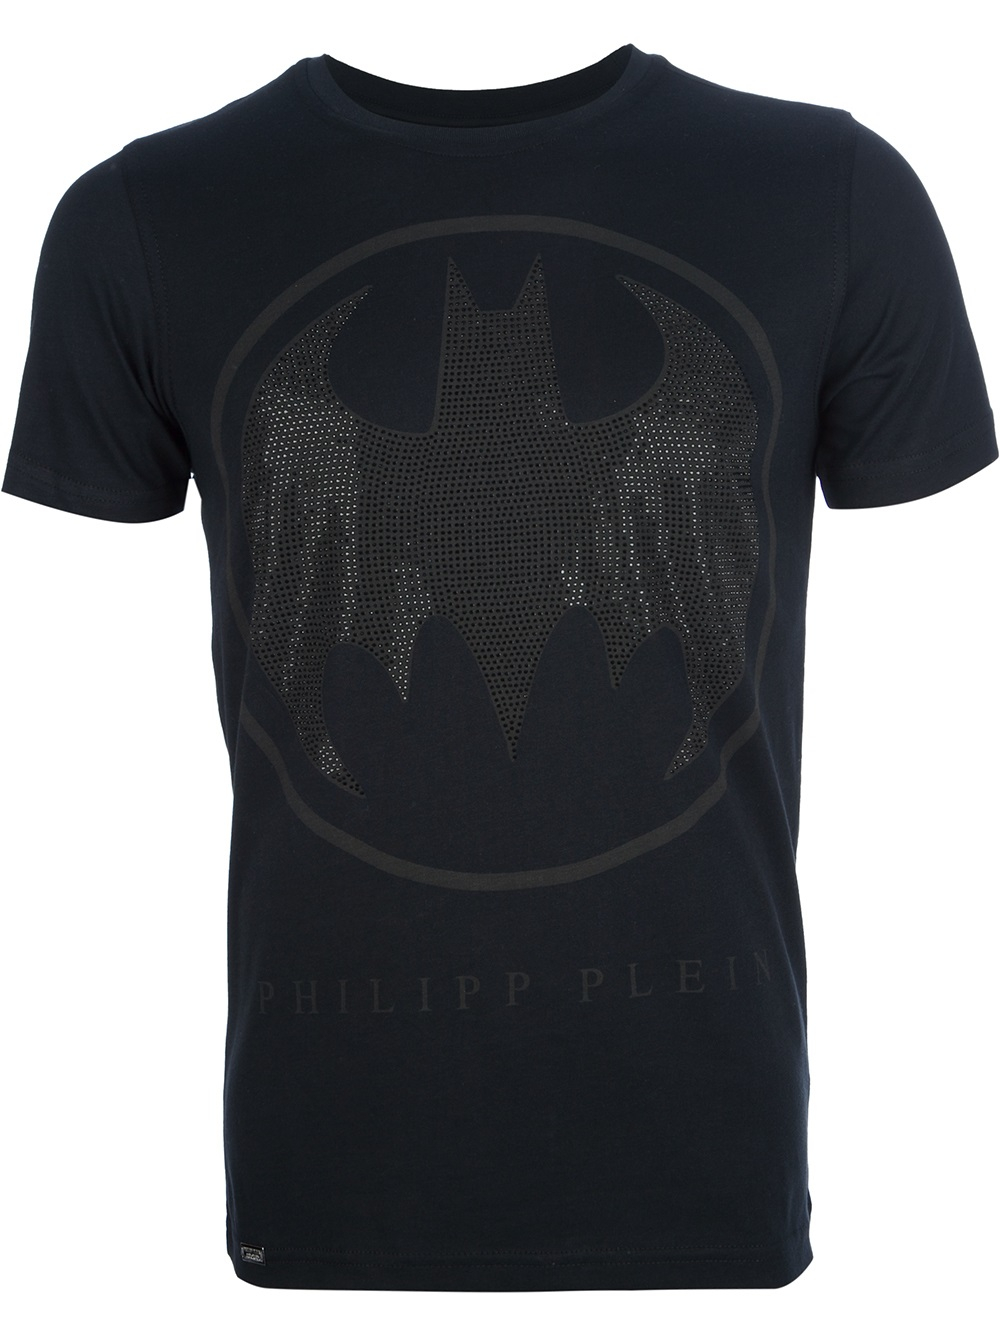 Black t shirt batman - Gallery